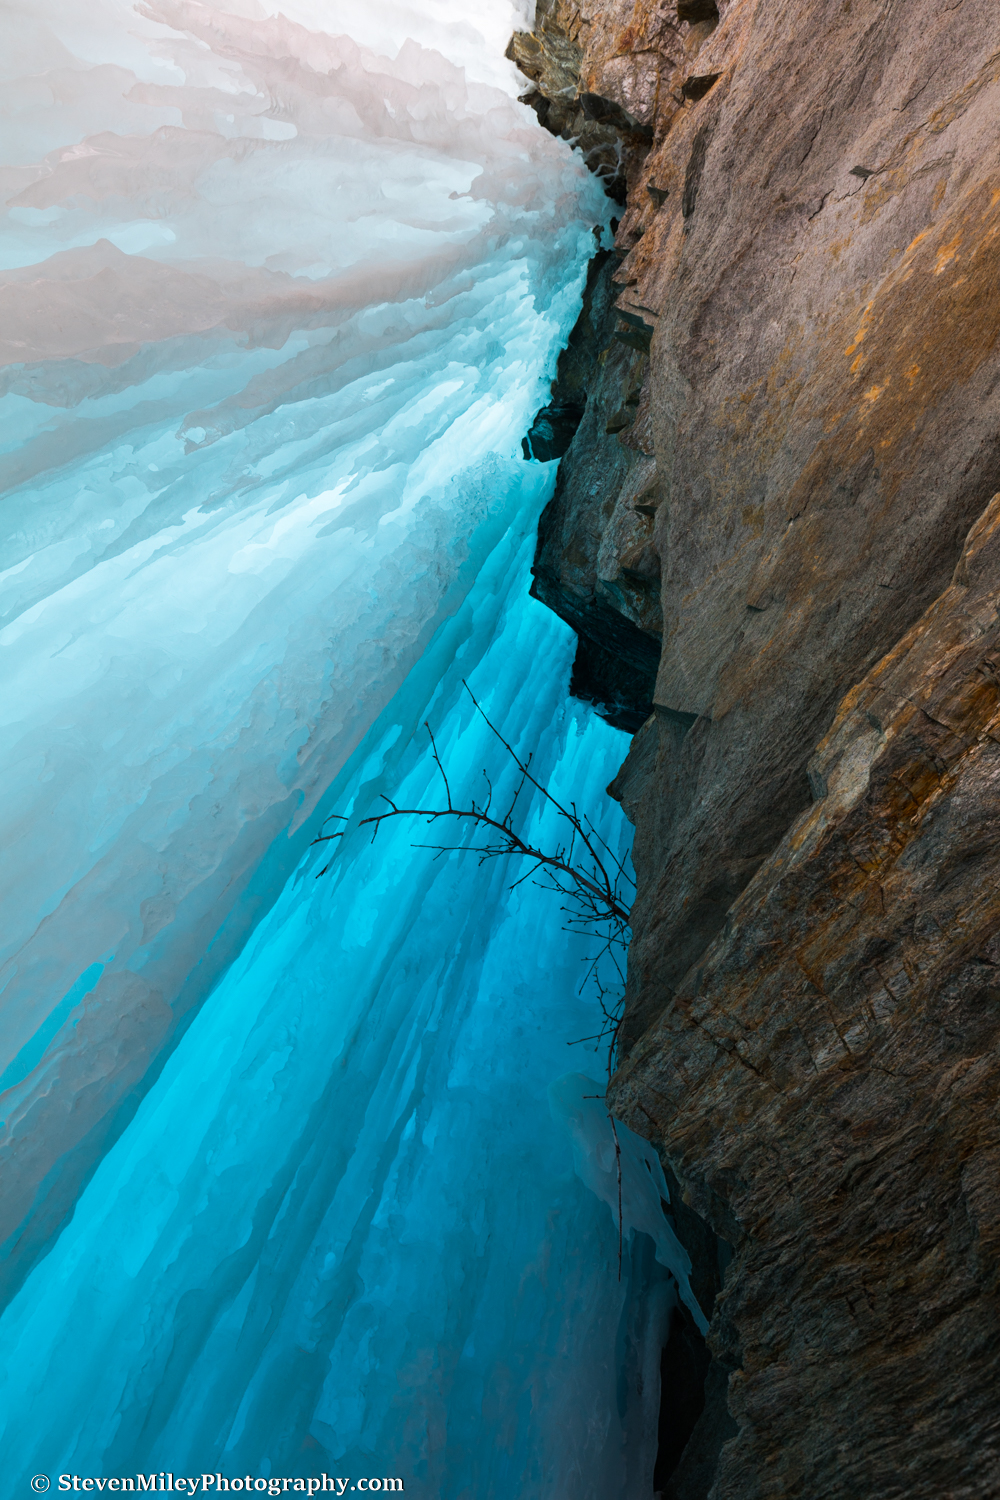 The blue ice behind the Onemile Creek waterfall. Bring a wide angle, squat down and look up!